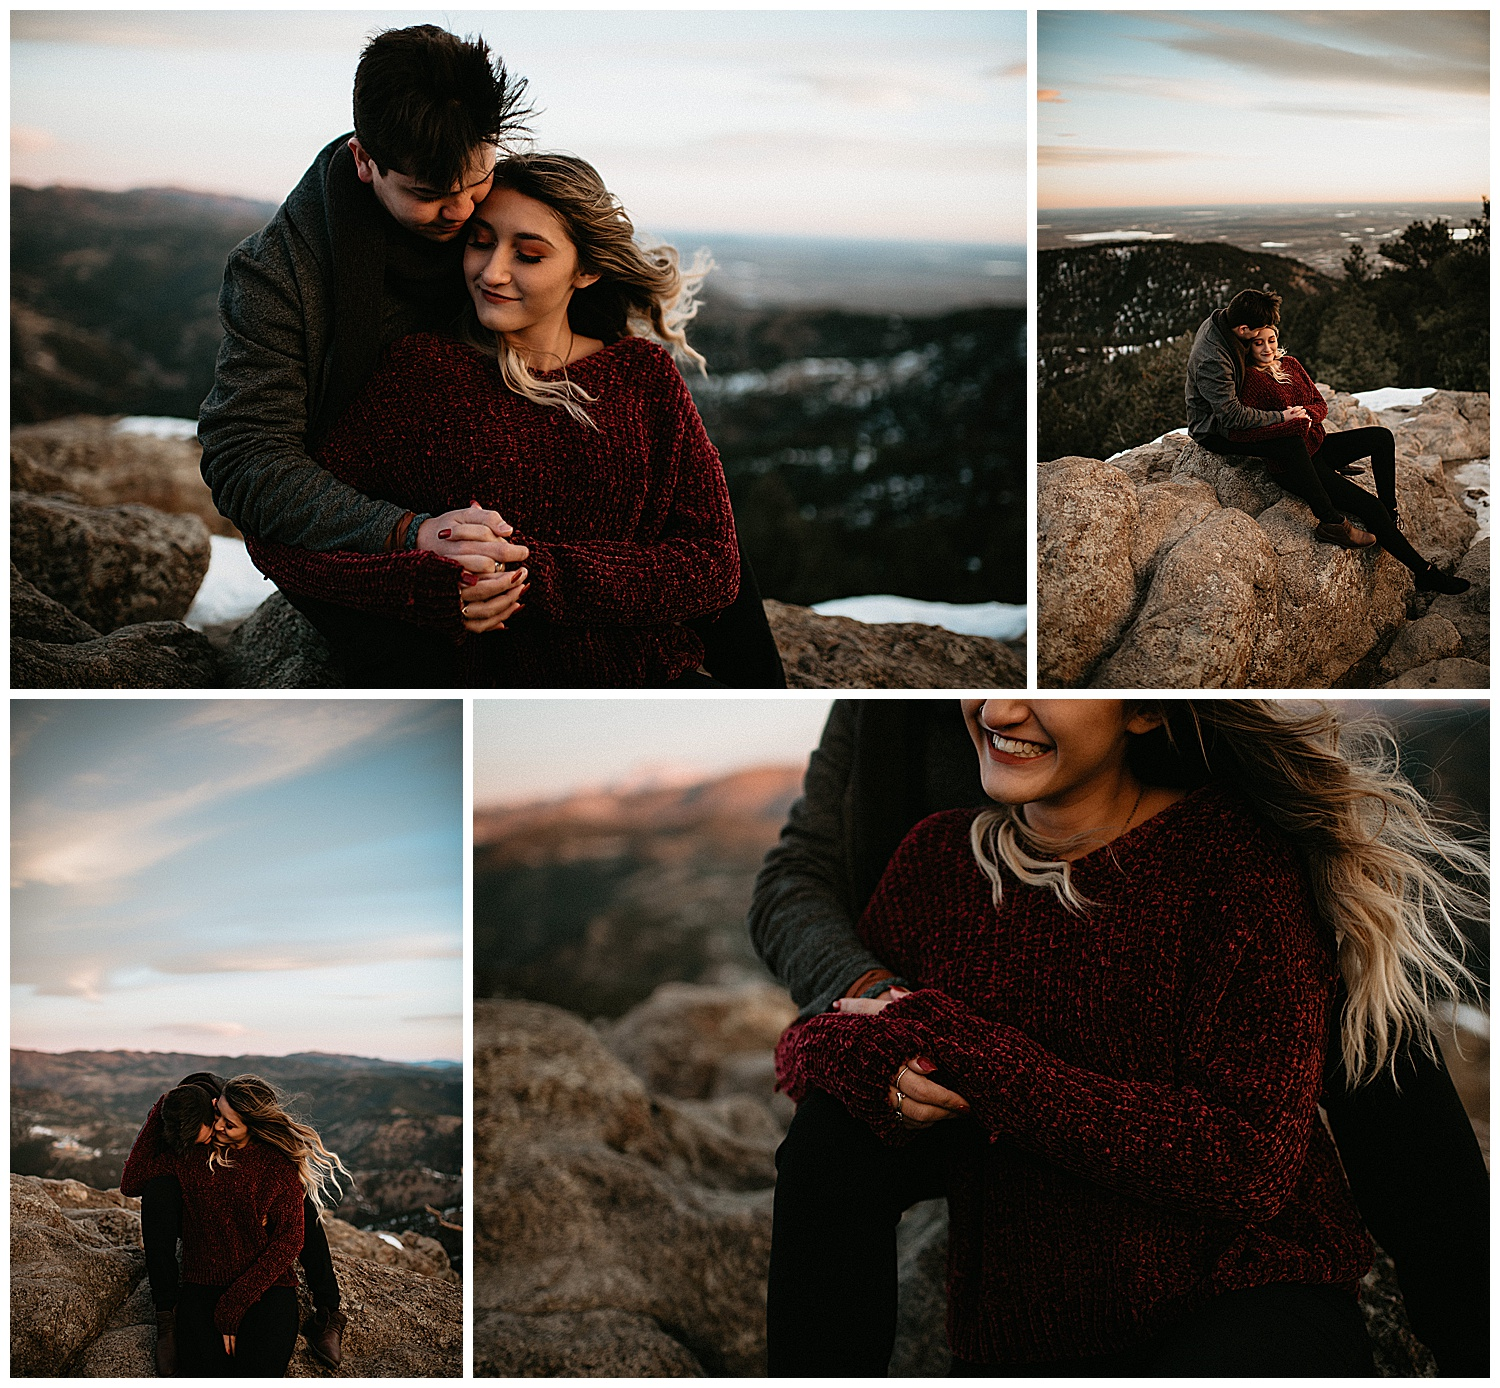 engagement-session-at-lost-gulch-lookout-boulder-co_0001.jpg